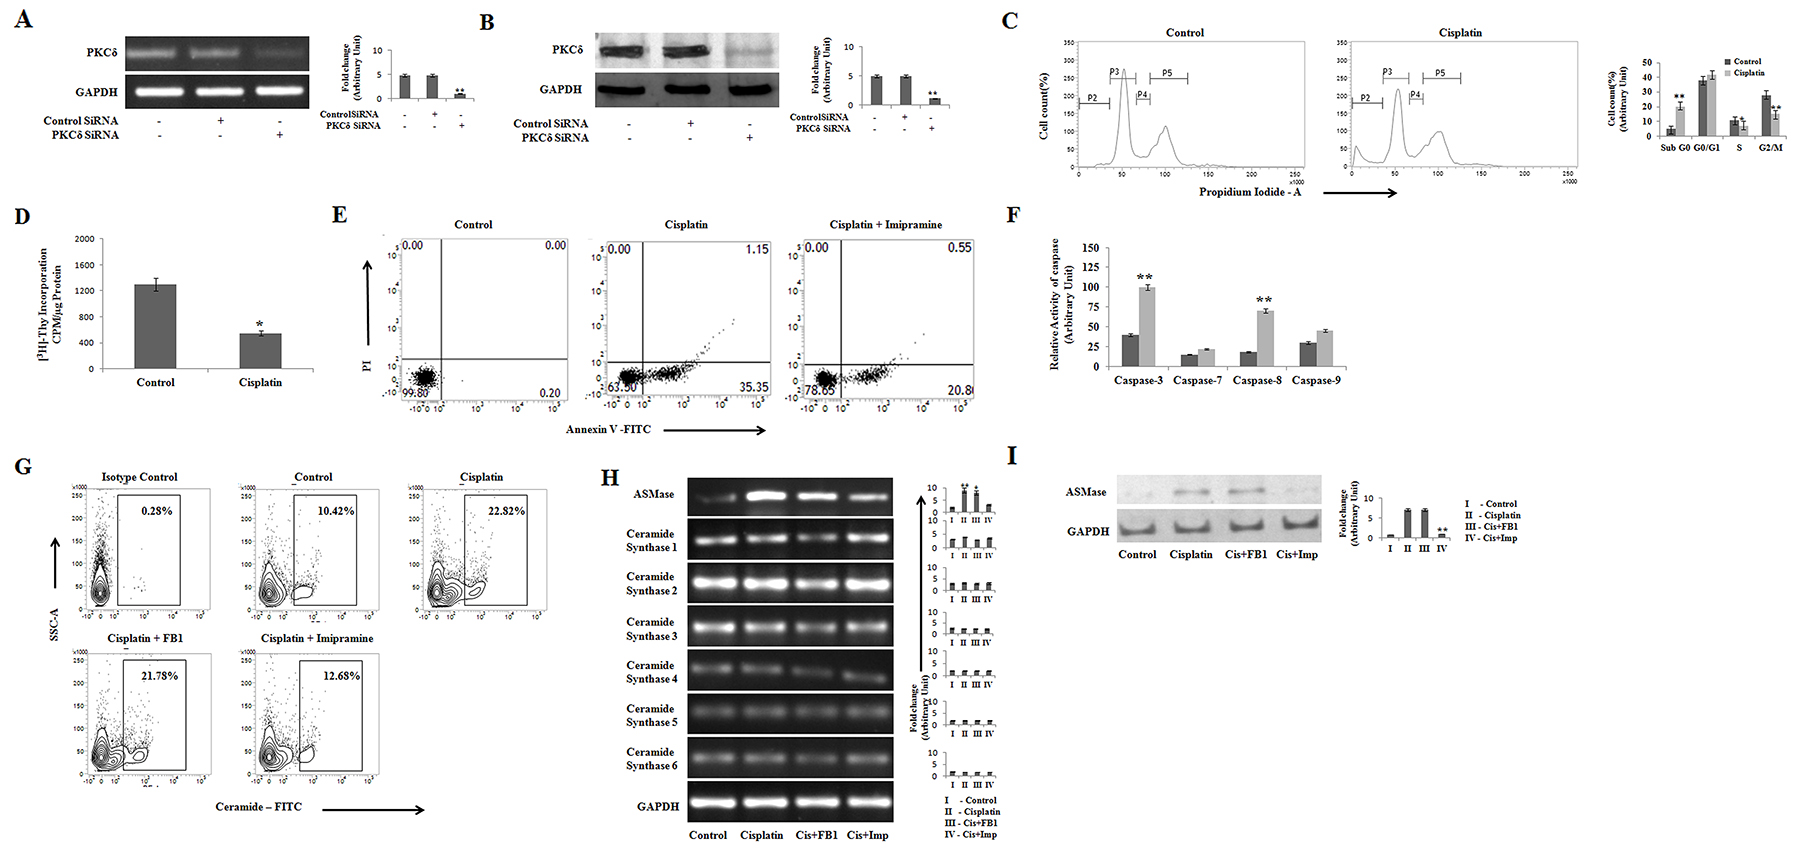 Cisplatin inhibits cell cycle progression and induces apoptosis in PKCδ silenced B16F10 cells via ceramide generation.